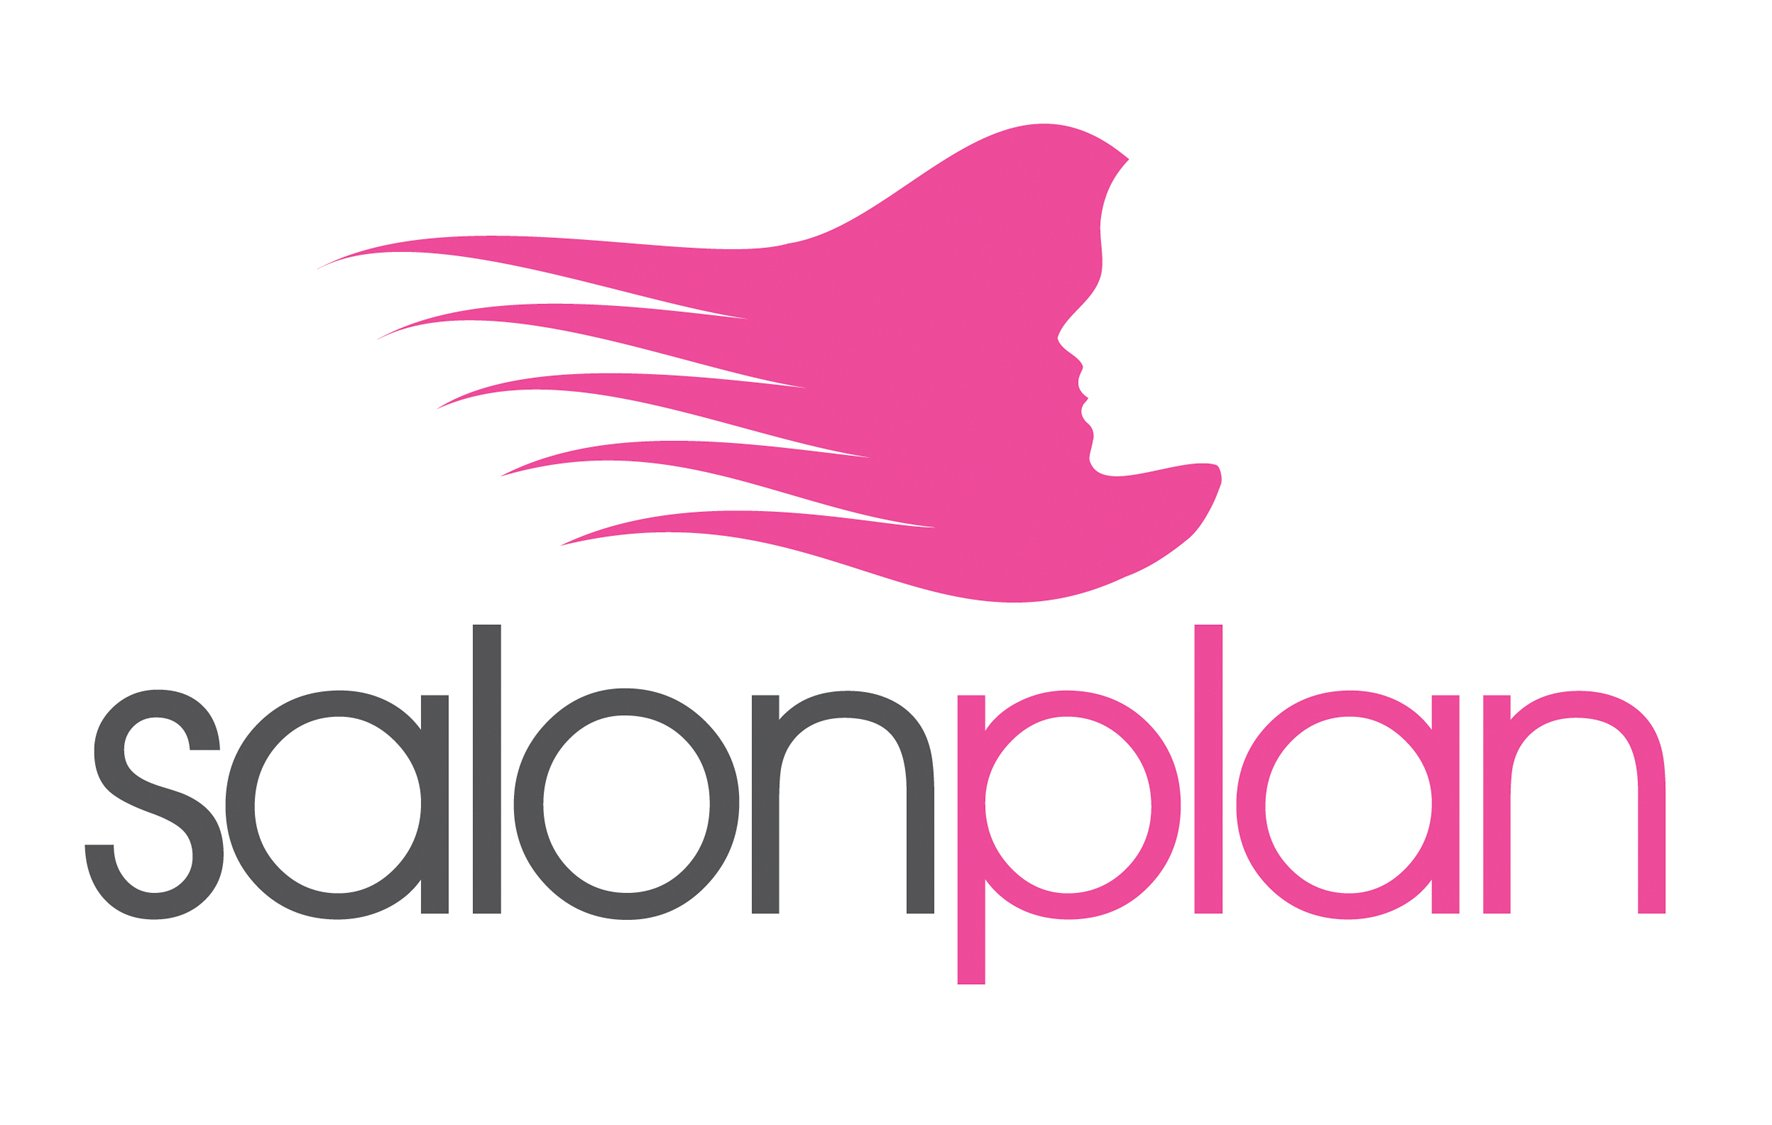 salon logo design idea 10 source - Nail Salon Logo Design Ideas